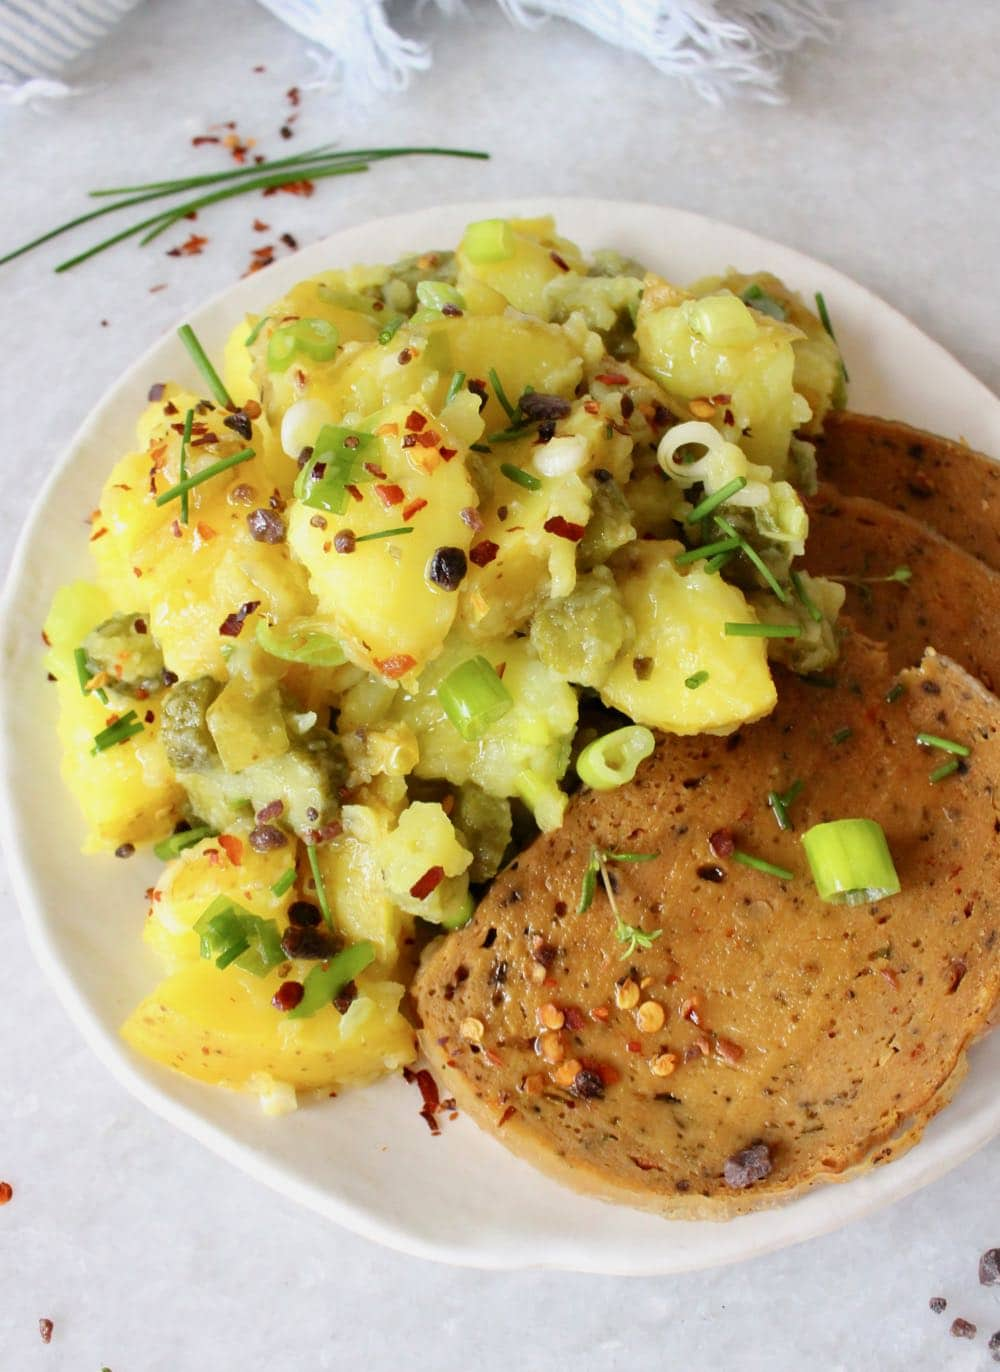 Eggless Potato Salad and Vegan Roast